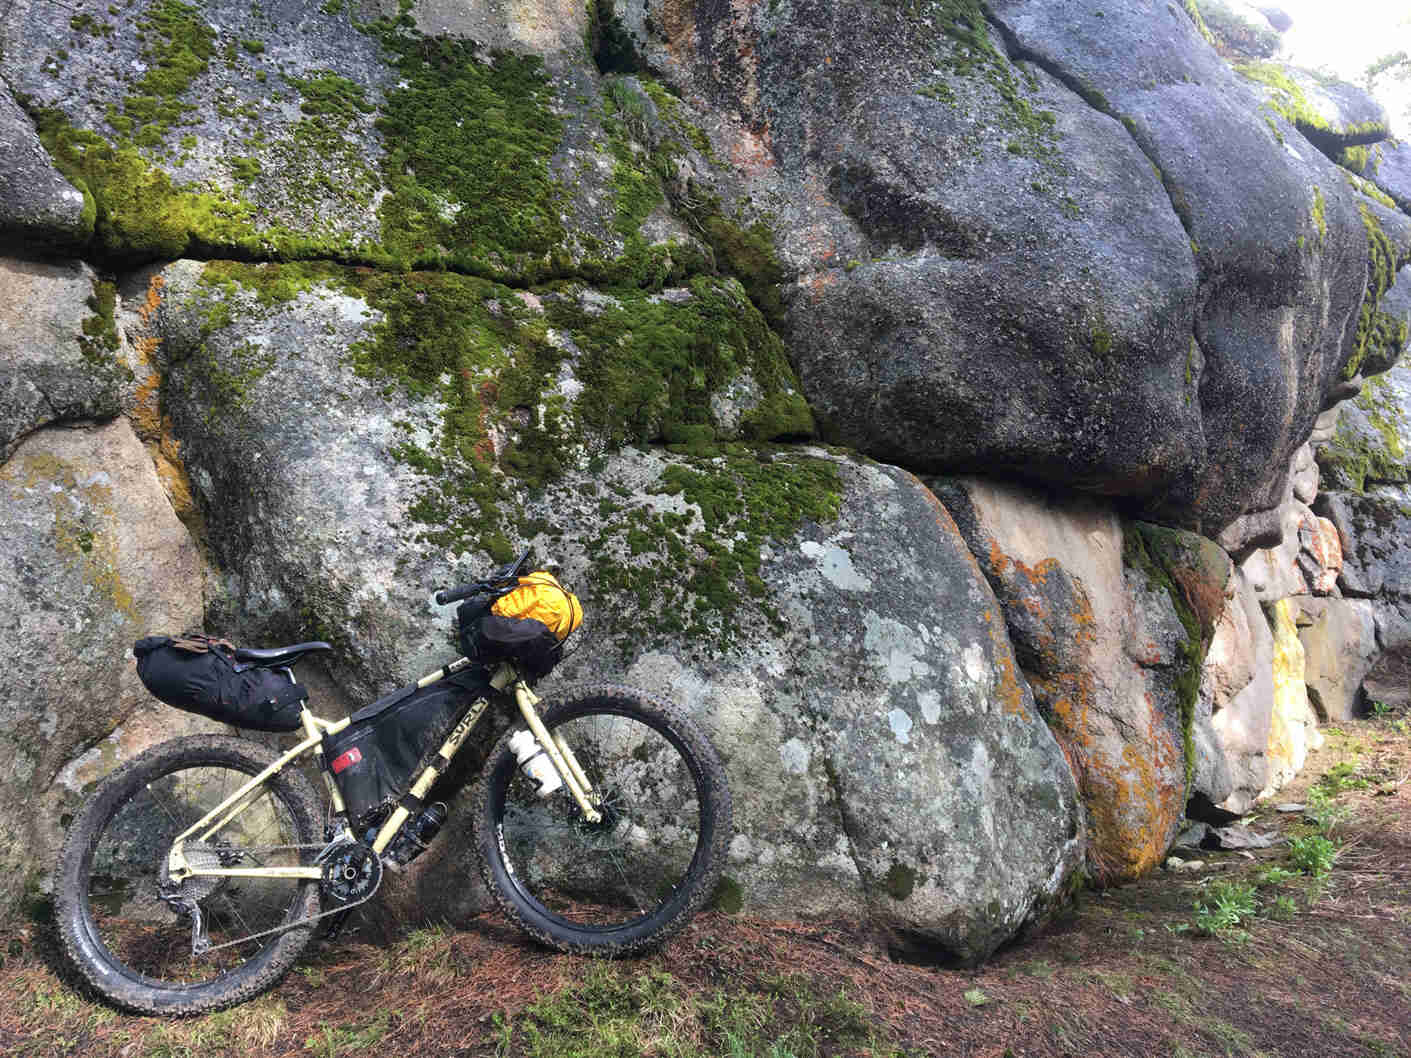 Right side view of a Surly ECR bike, loaded with gear, against a rock wall